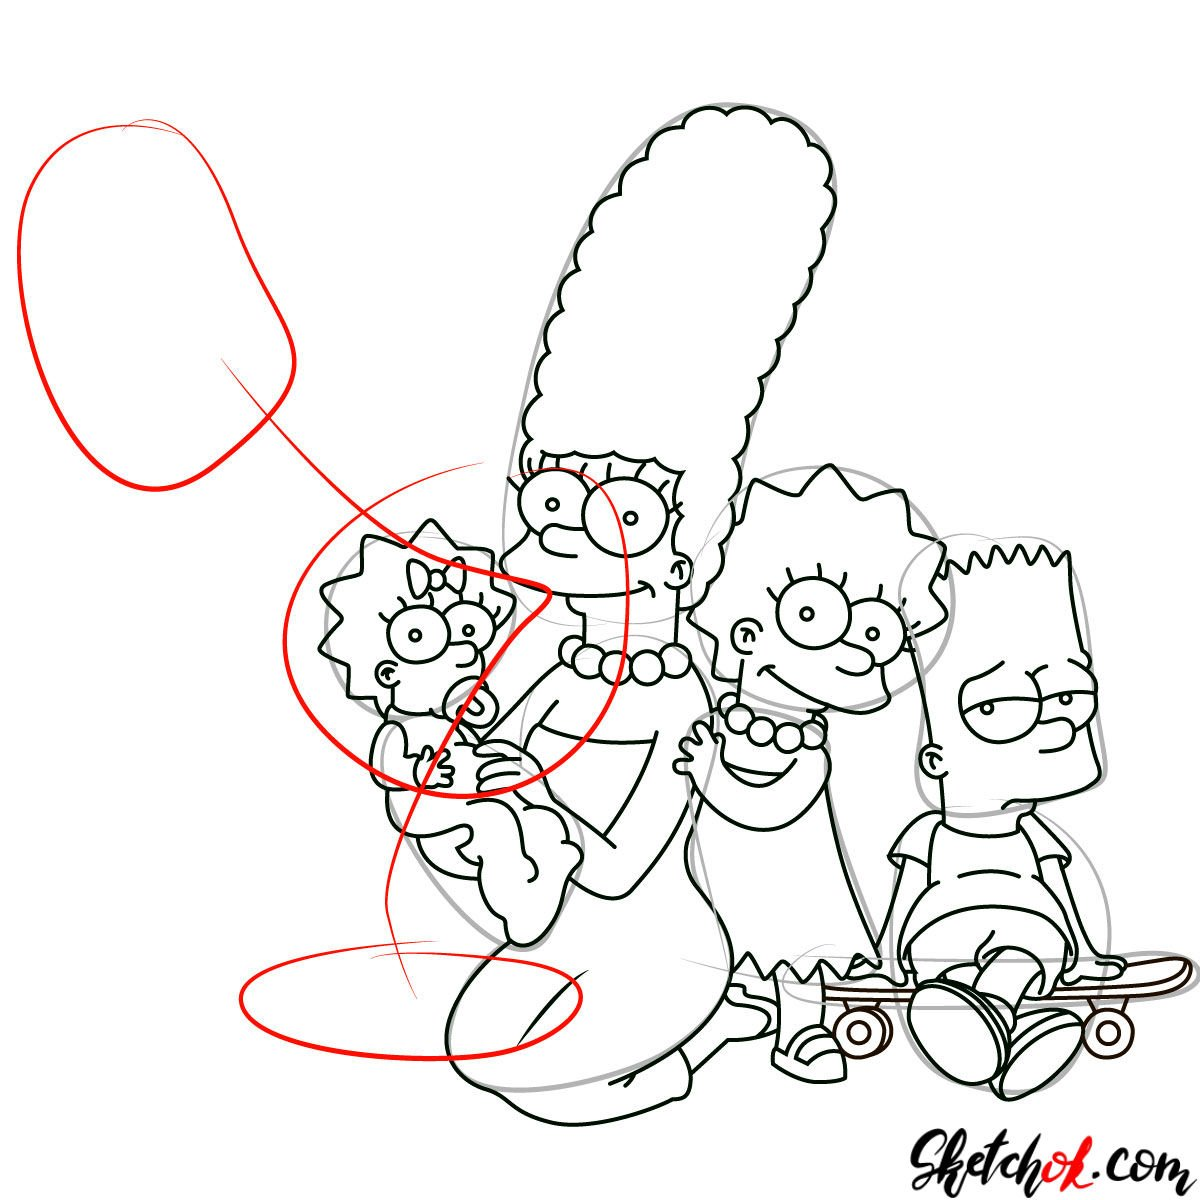 How to draw the Simpsons Family - step 23